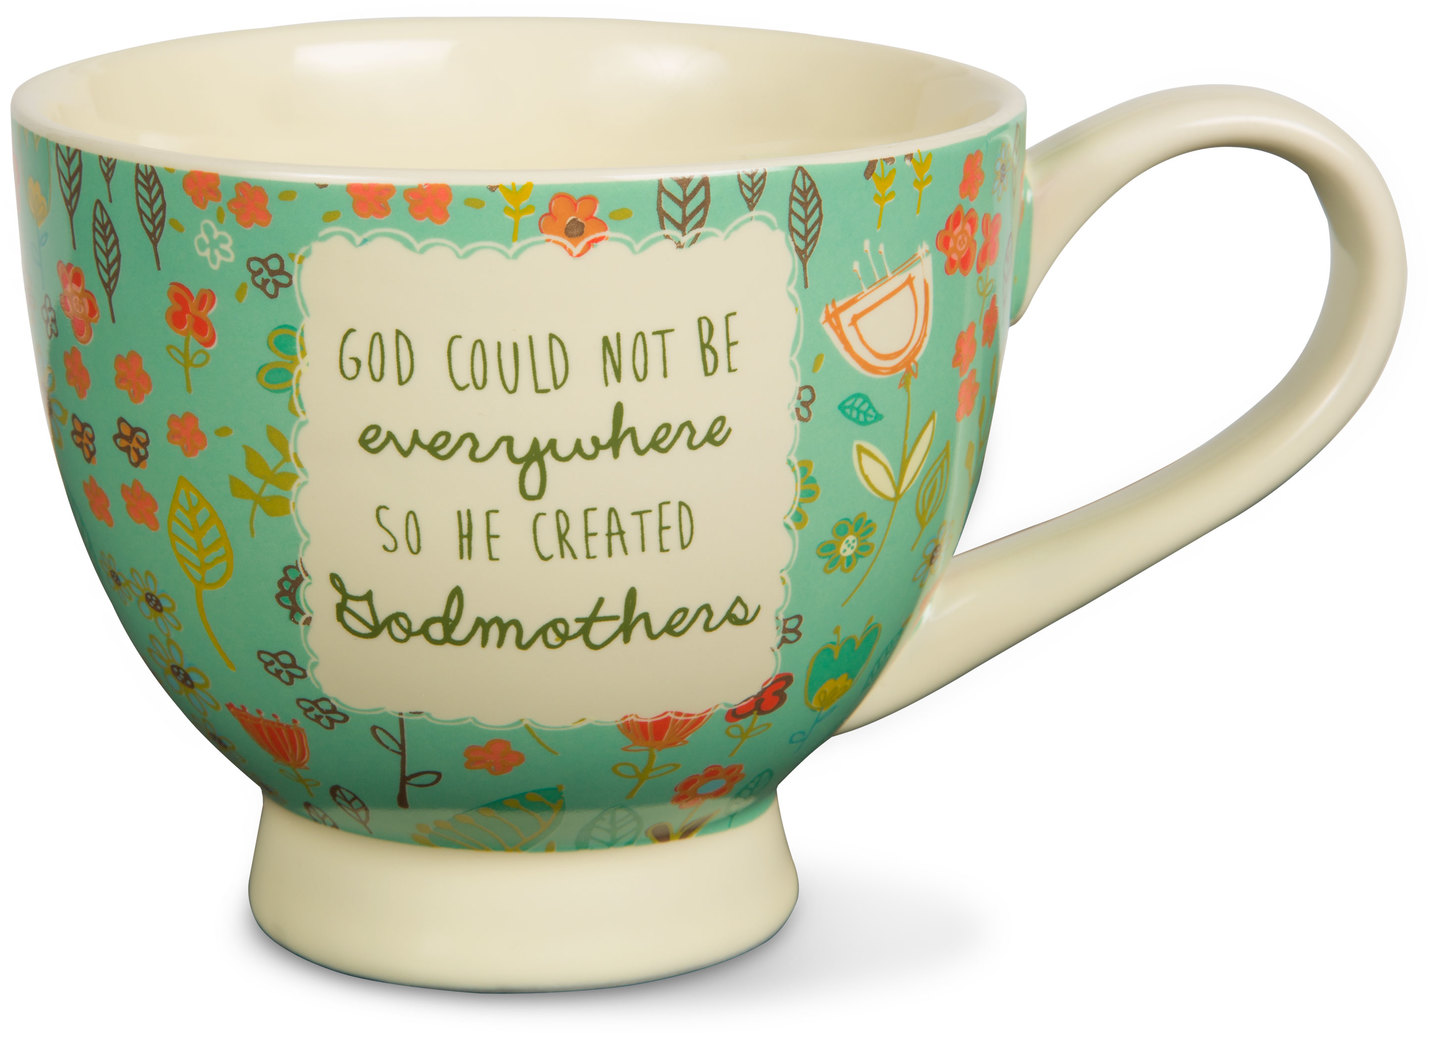 A Mother's Love God Could Not Be Everywhere so He Created Godmothers Teal Floral Soup Bowl Mug 17 oz by Pavilion Gift Company